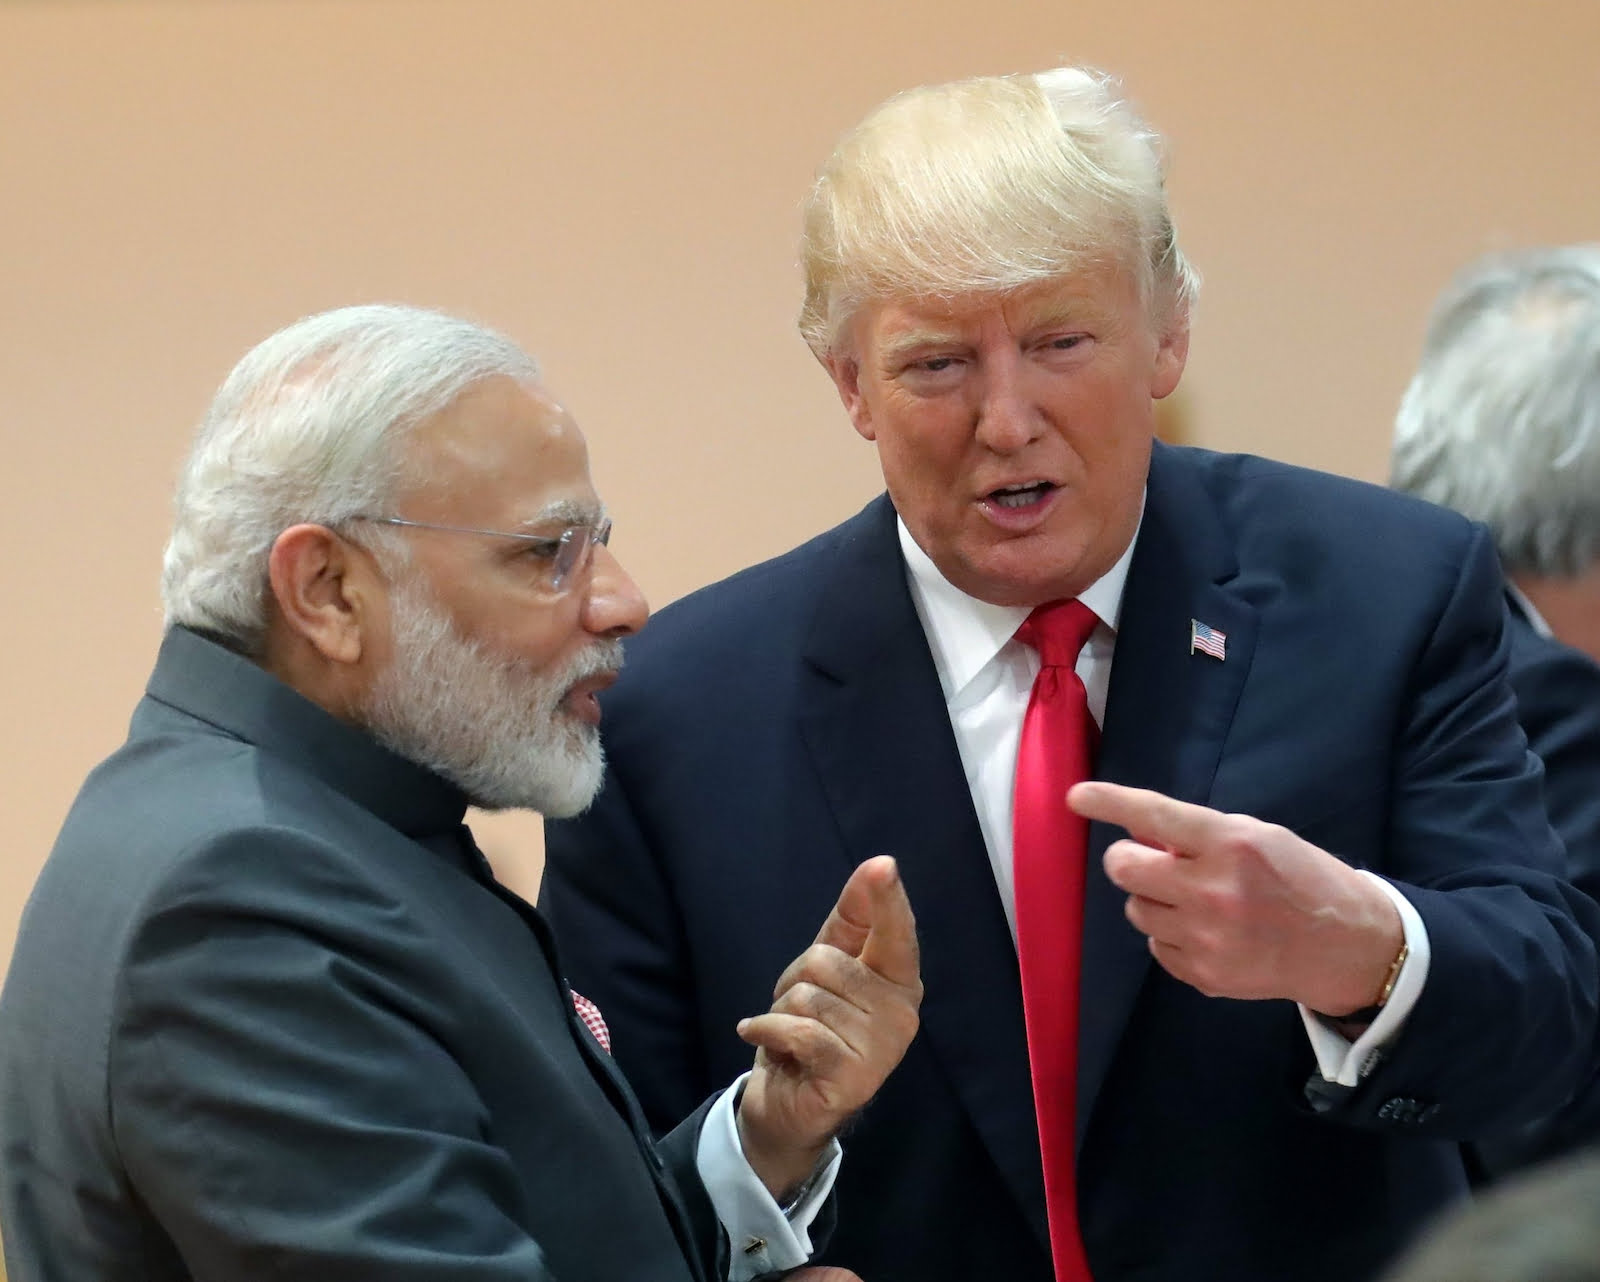 Indian Prime Minister Narendra Modi with US President Donald Trump at the G20 Summit in Hamburg, Germany in July 2017. Photo: DPA